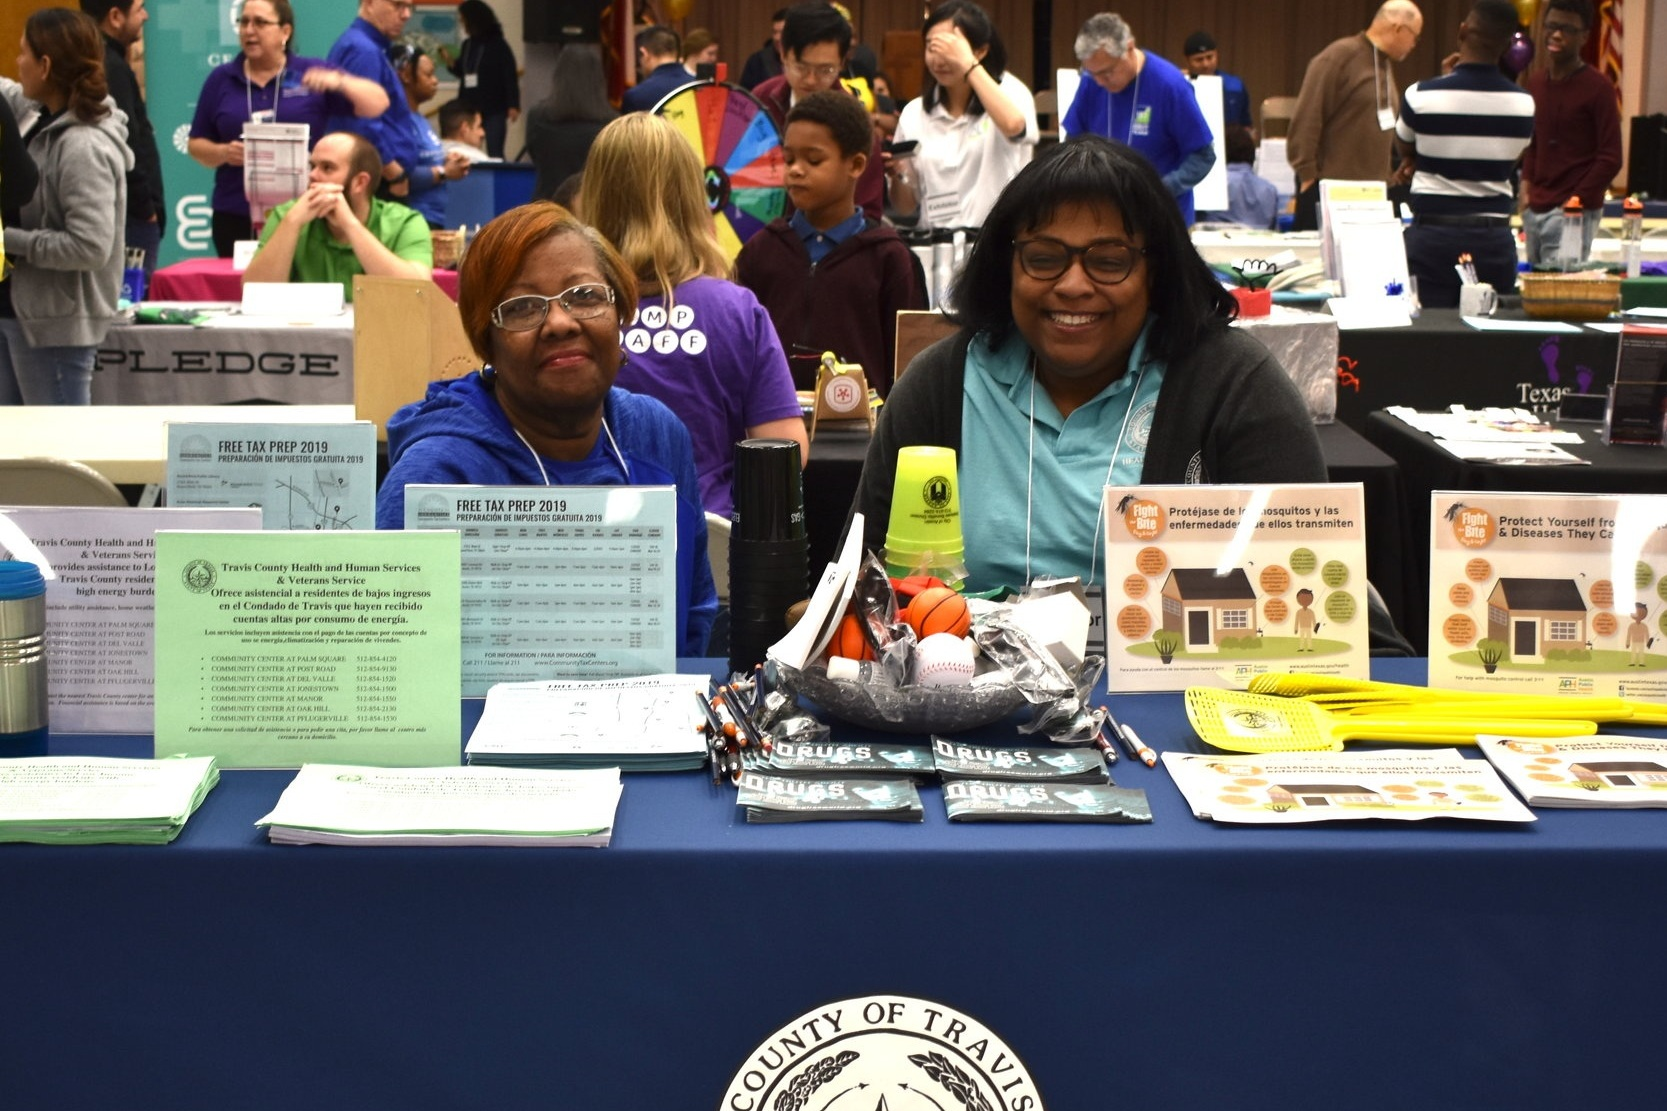 Travis County Health and Human Services booth at local health and resource fair.